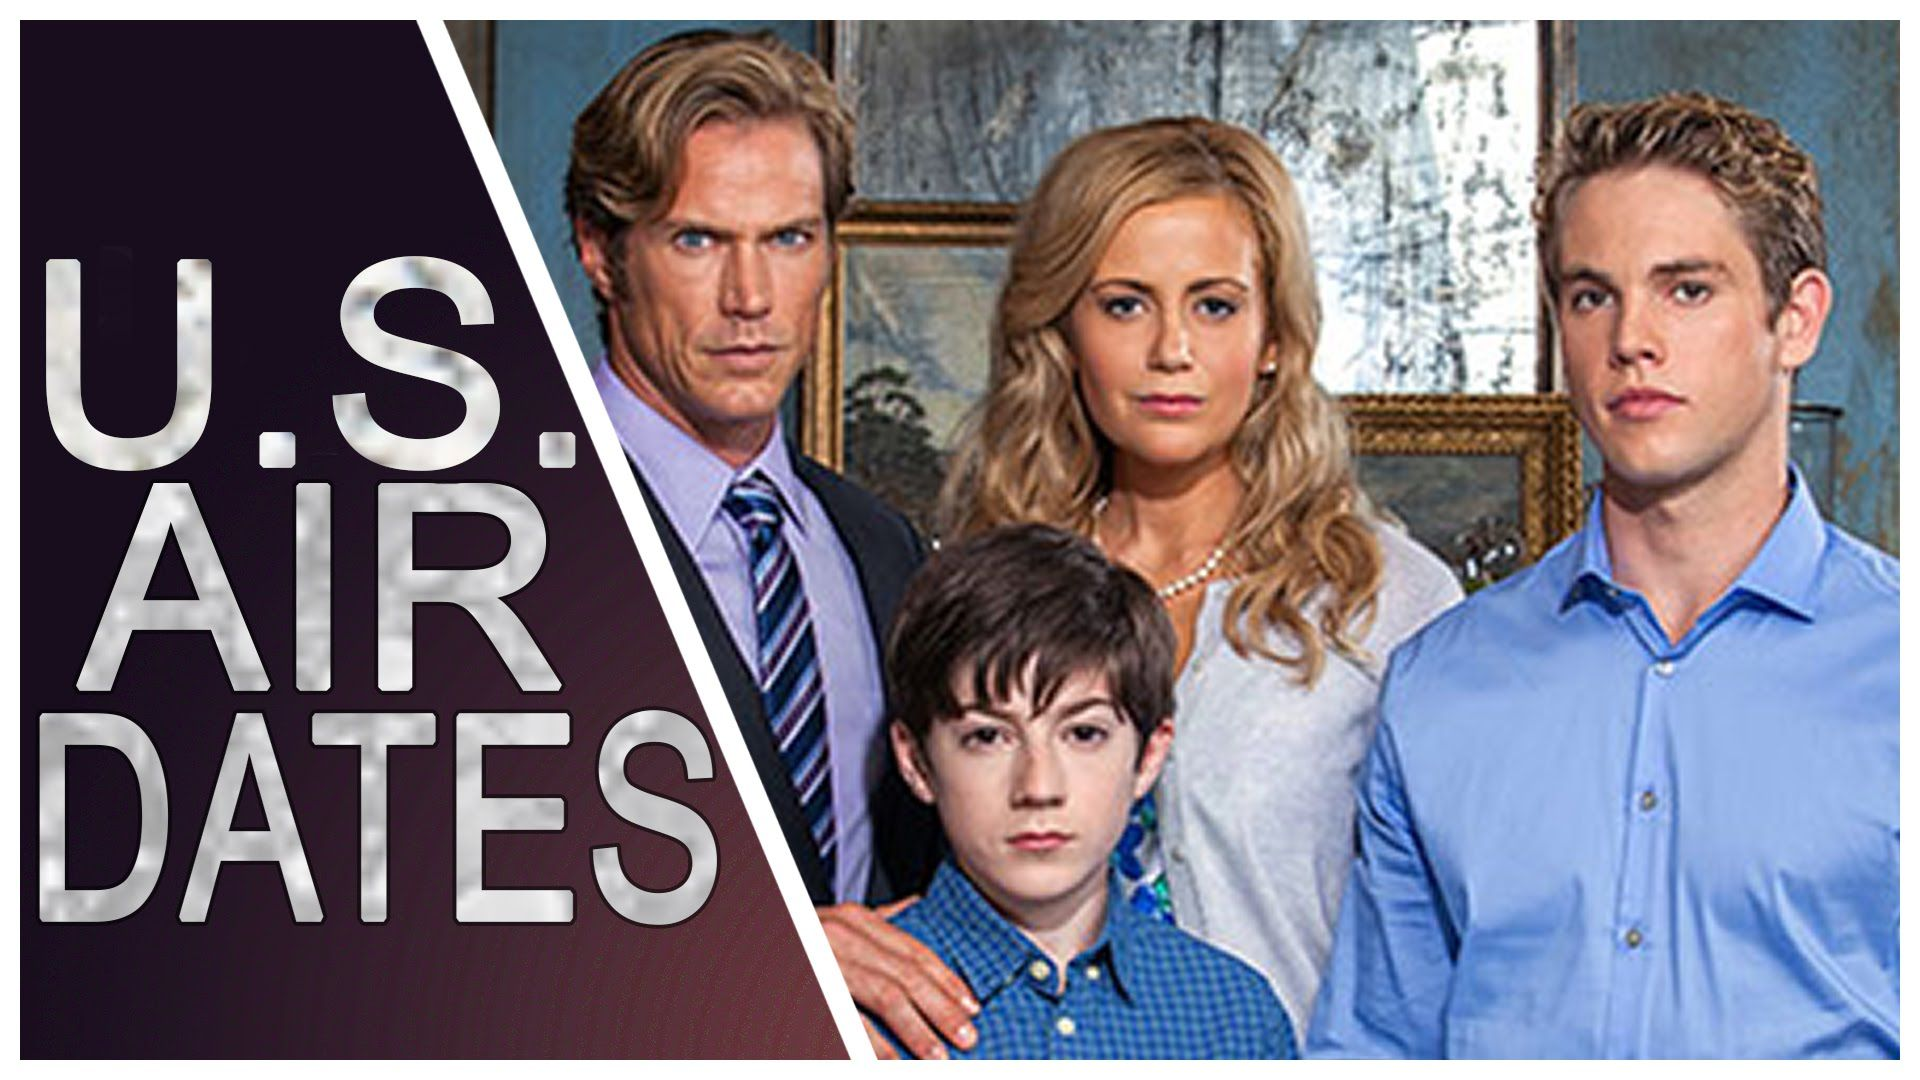 Lifetime S Flowers In The Attic Movie Series To Air 2 Films In April Hollywood News Daily Lifetime Movies Flowers In The Attic American Actors